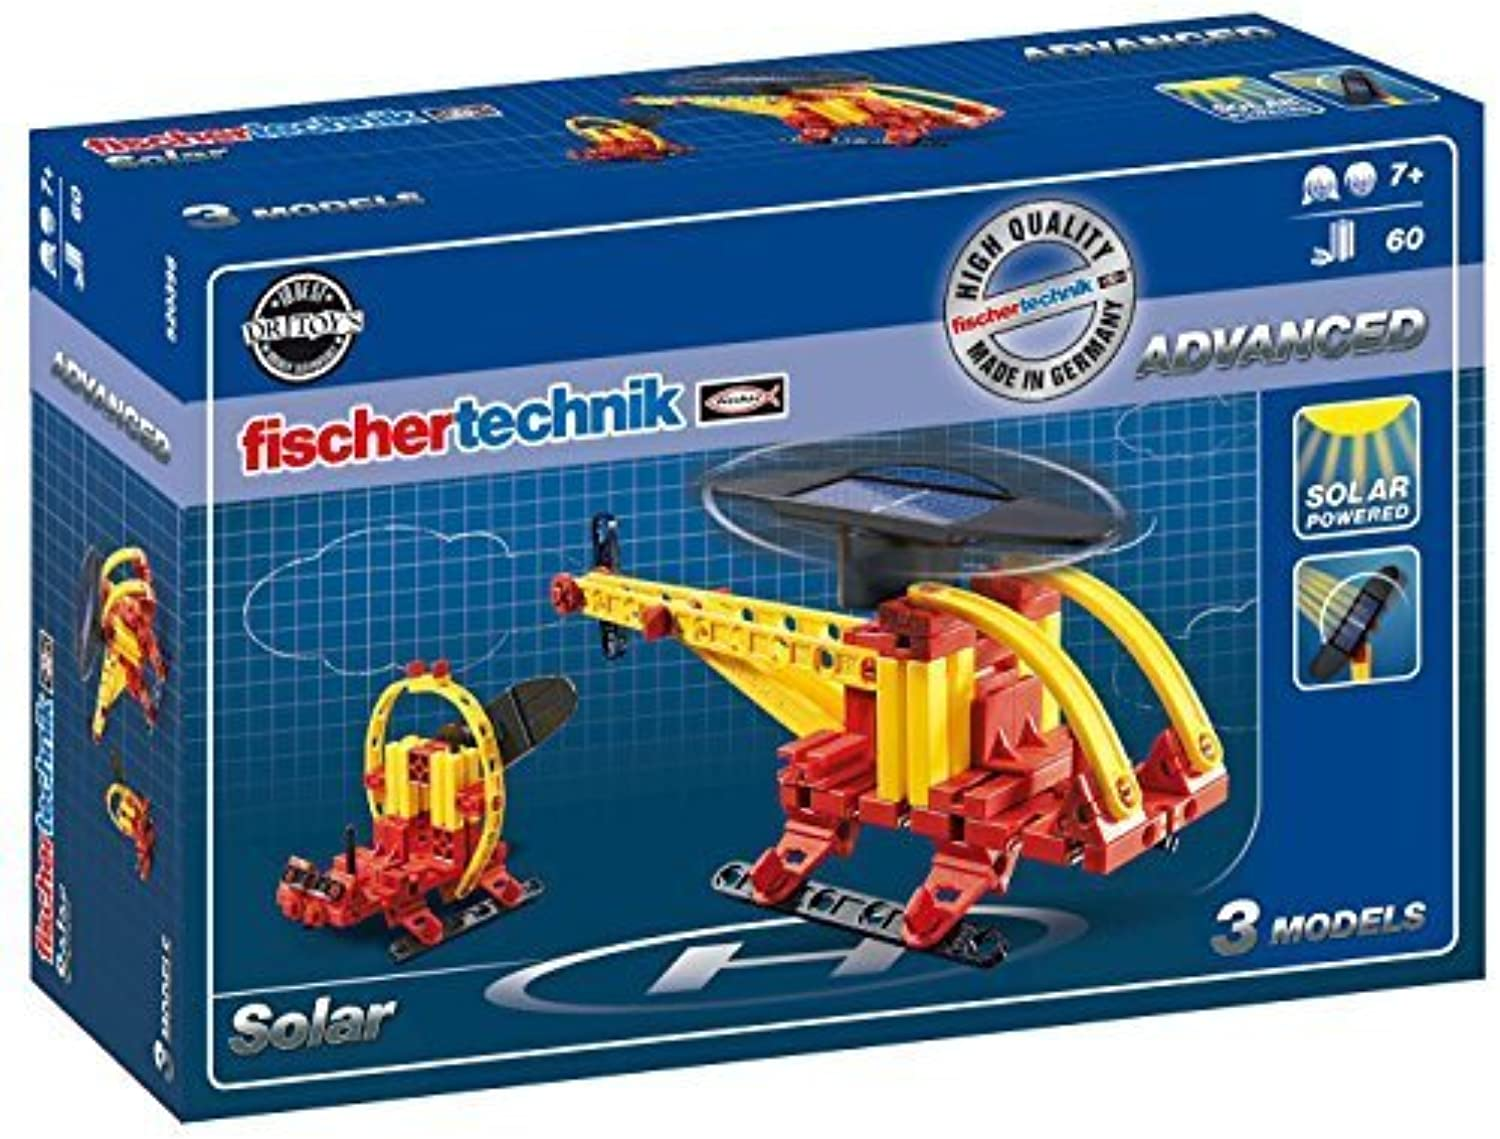 Fischertechnik Basic Solar Kit, 60-Piece by